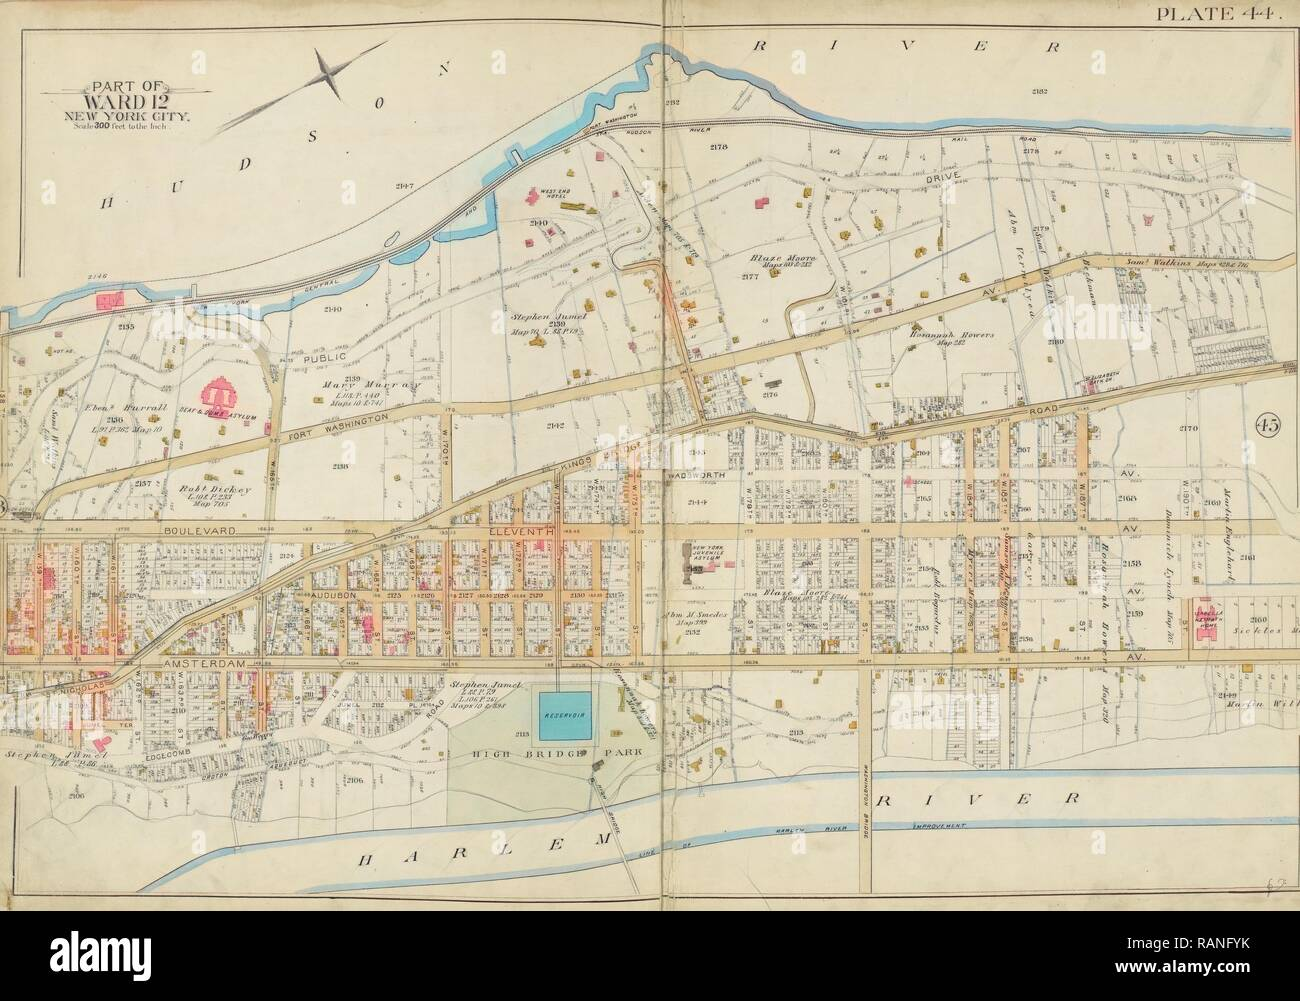 Map Of New York Harlem.Manhattan Double Page Plate No 44 Map Bounded By Hudson River